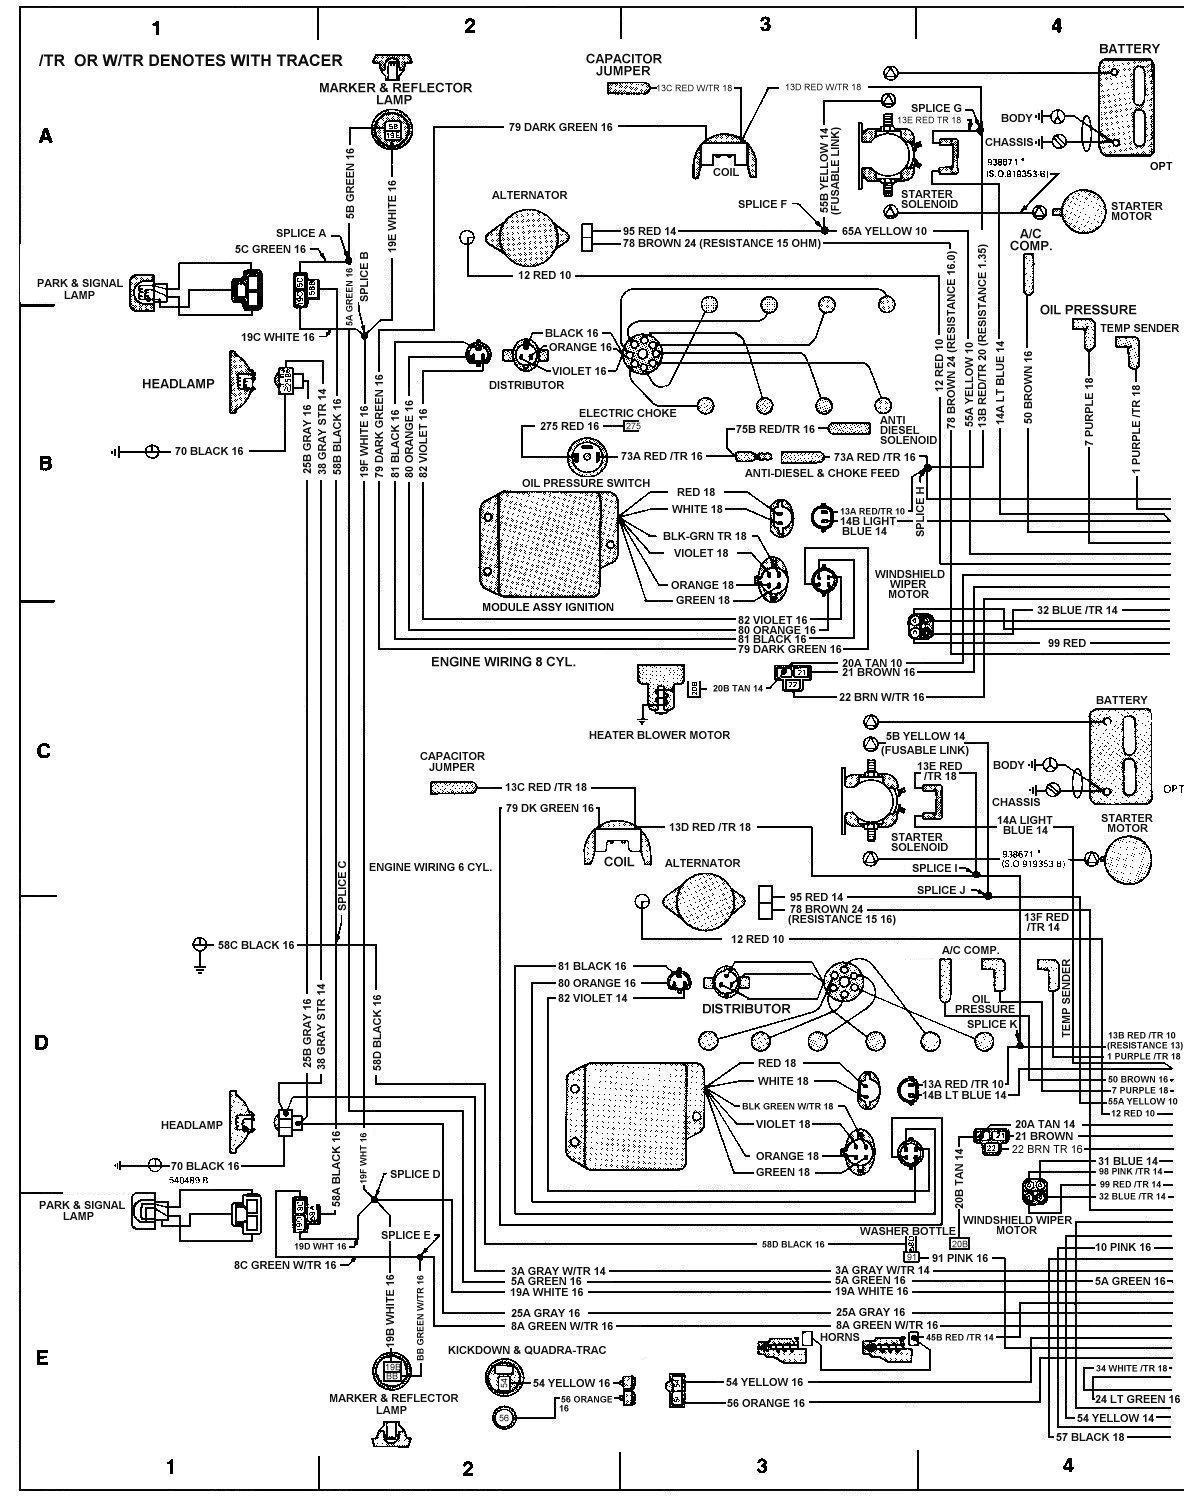 Radio Wiring Diagram For 2002 Sienna as well Wiring Diagram For Rv Holding Tanks moreover Chevrolet Engine Vacuum Routing Diagrams 3 4l moreover Ford F150 Steering Column Repair moreover 79 Corvette Ac System Diagram. on repairguidecontent